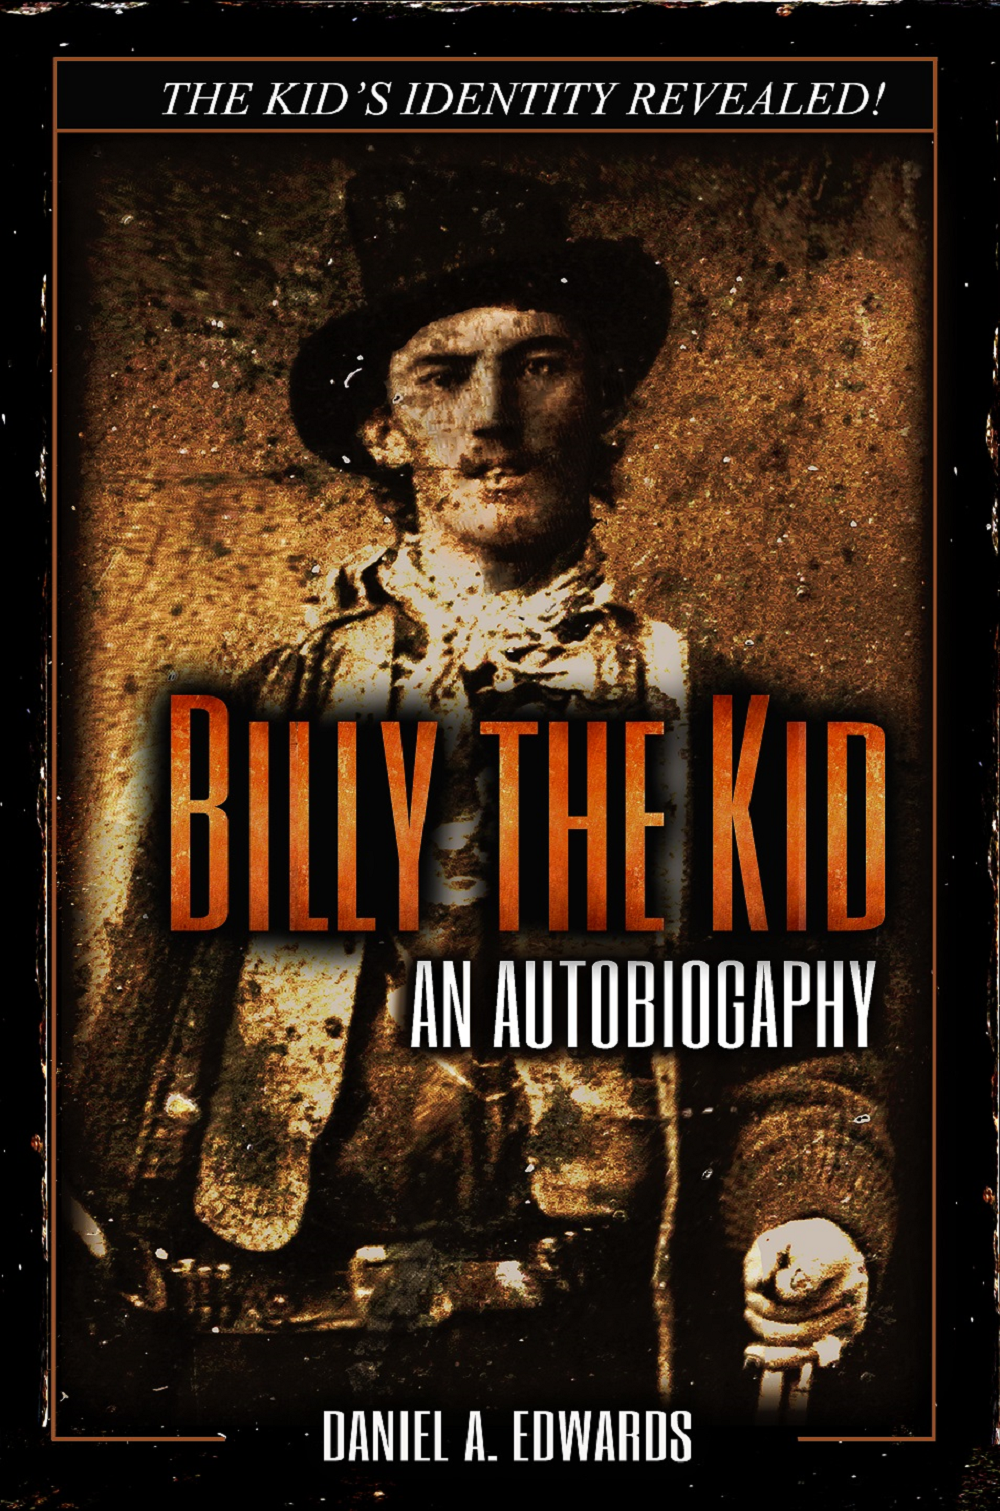 Bill the Kid: An Autobiography